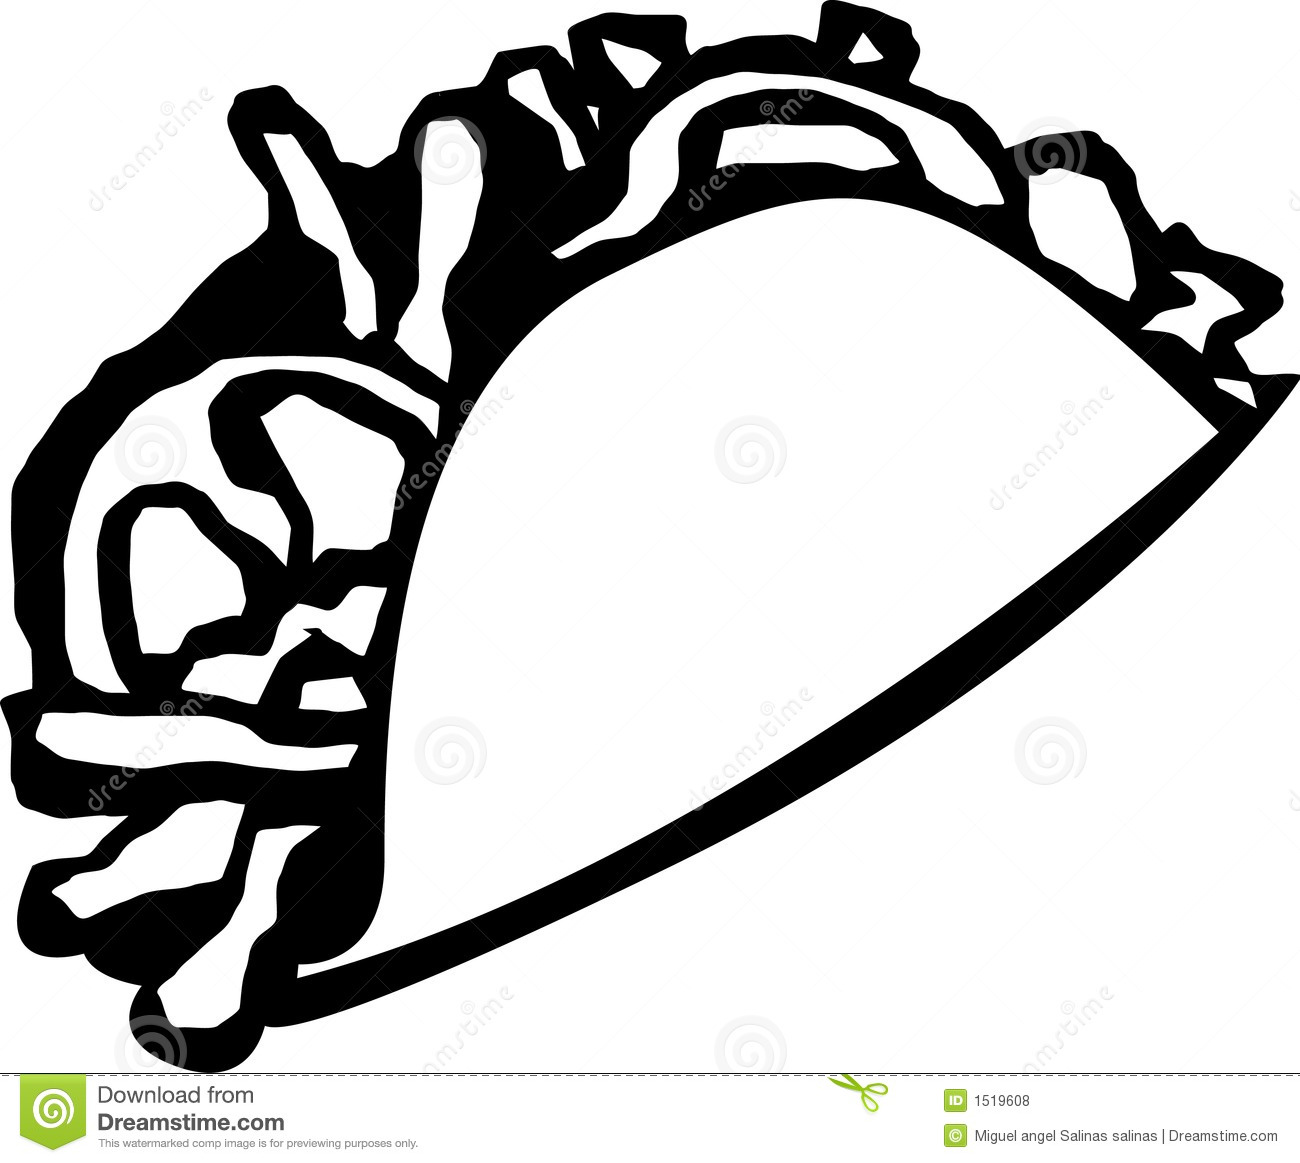 Taco Vector Illustration Royalty Free Stock Photos - Image: 1519608